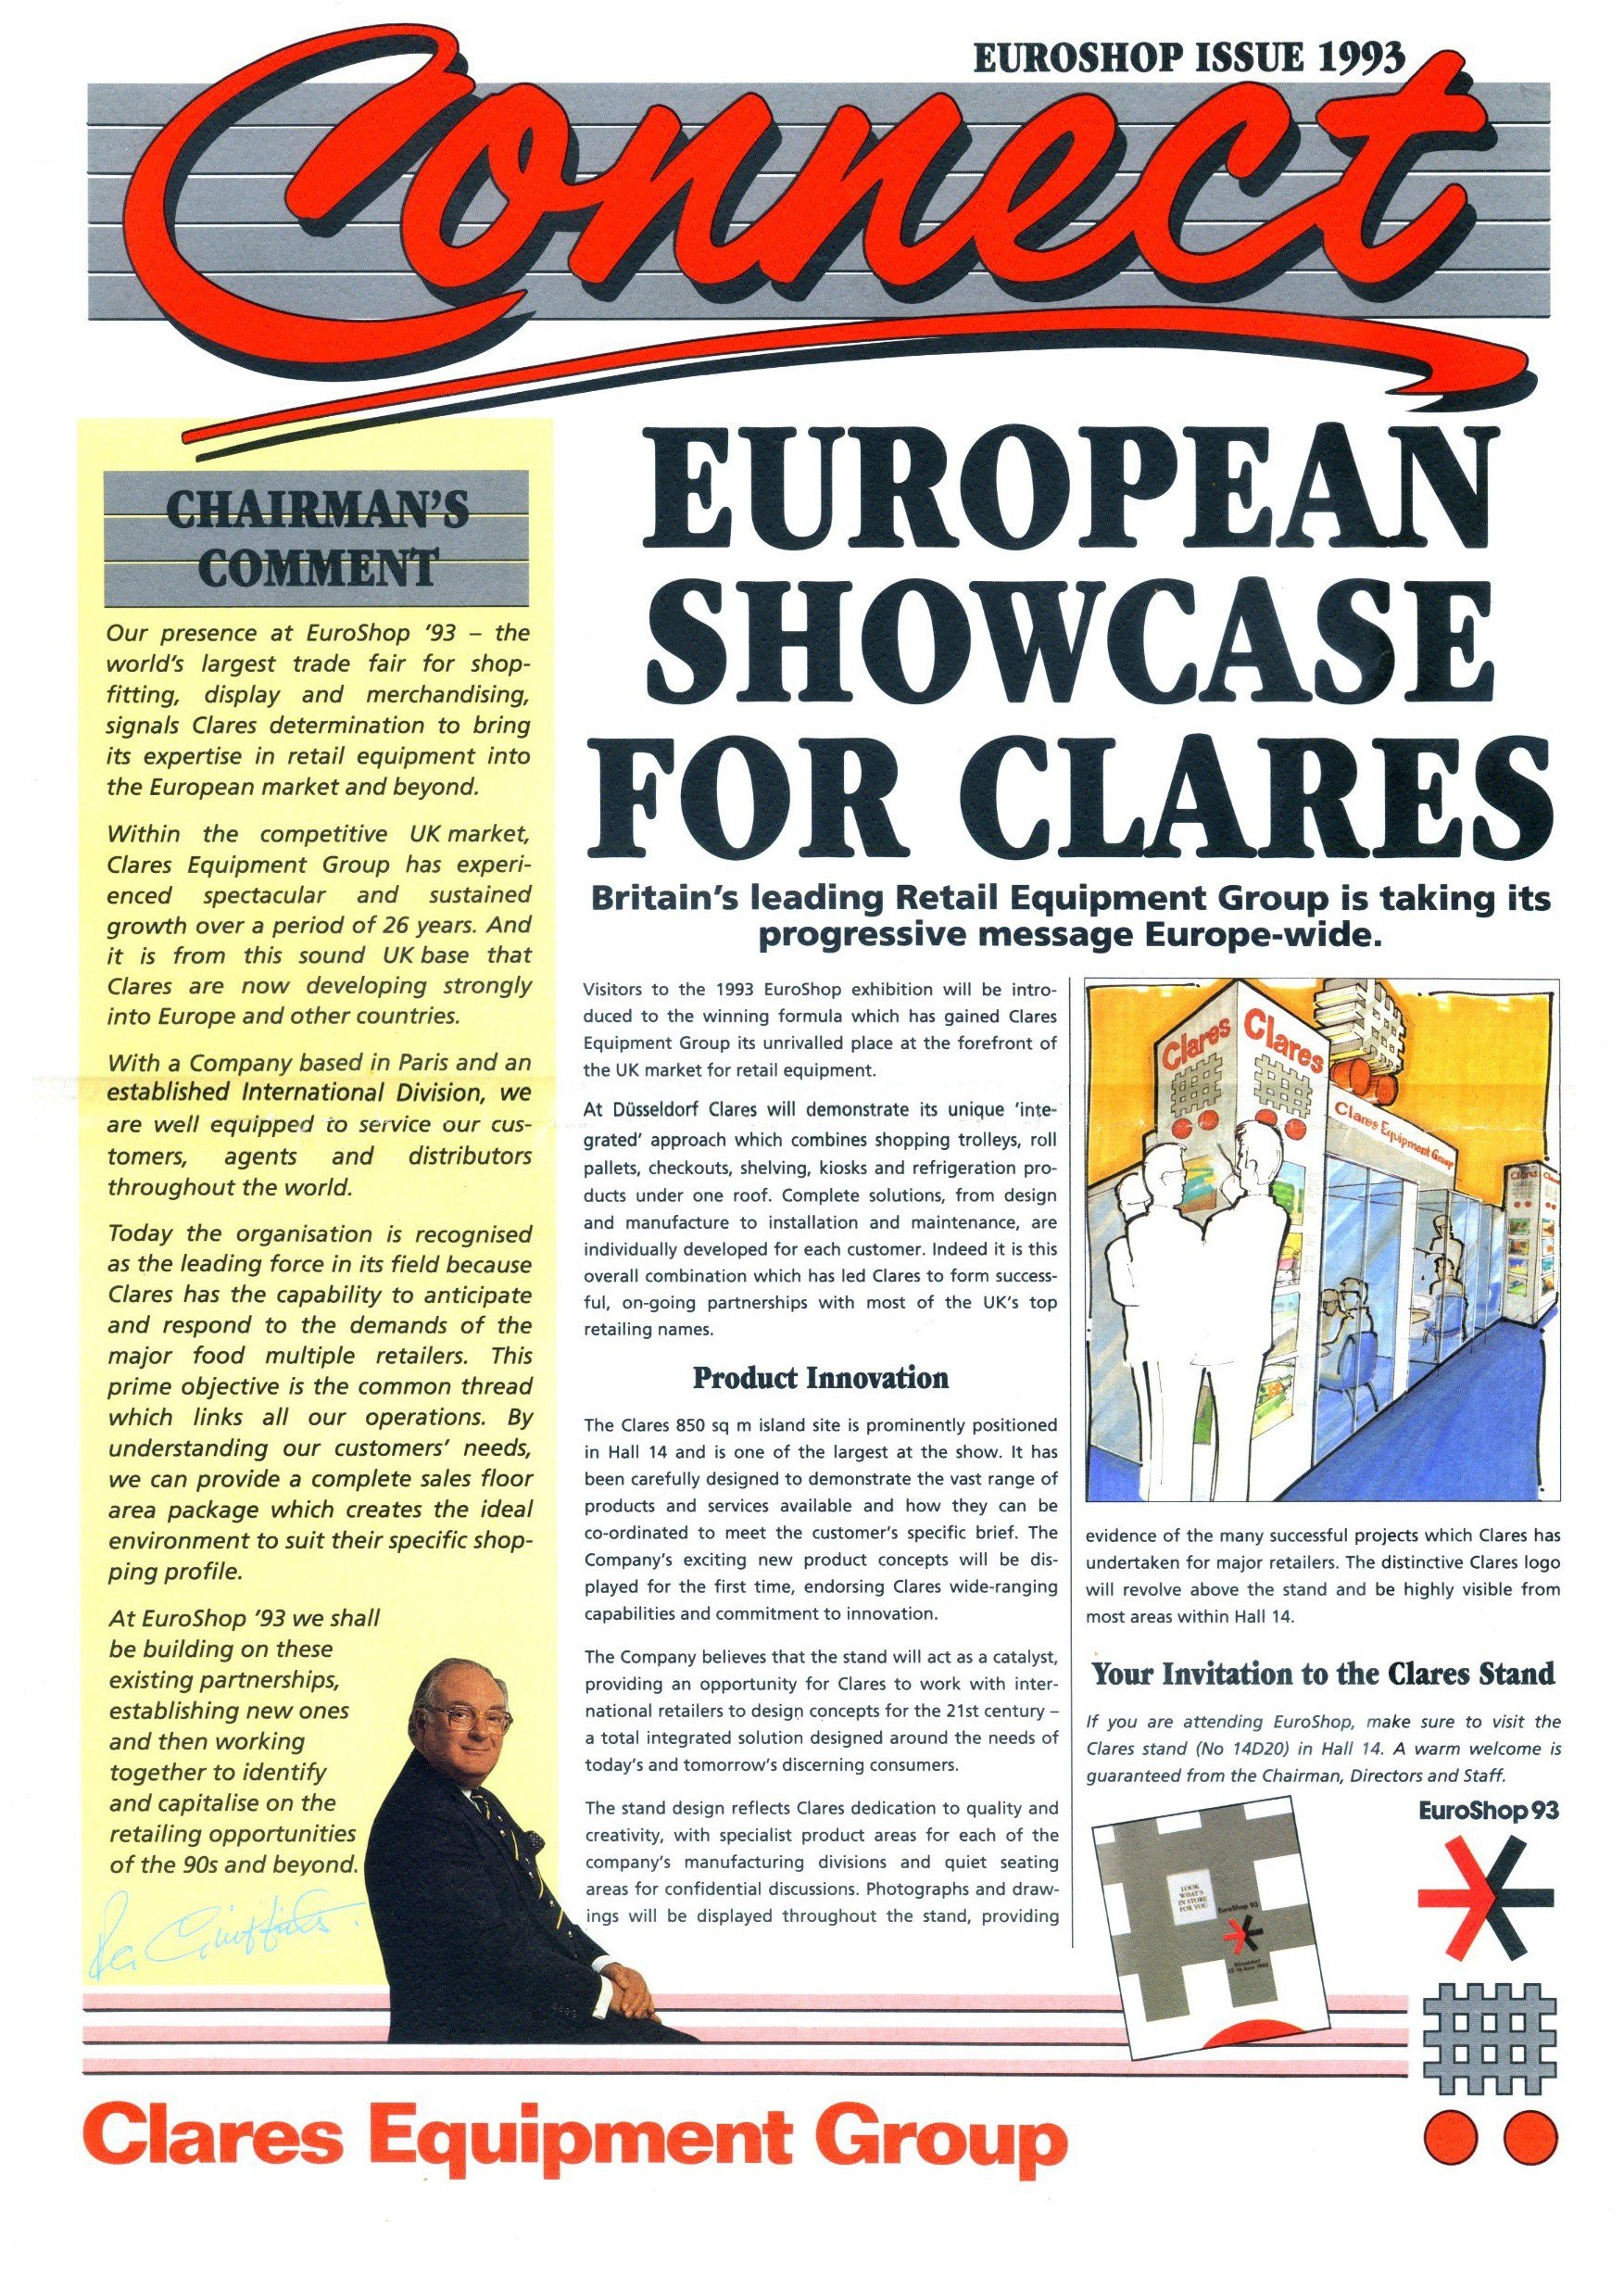 Clares Connect News - Euroshop 1993